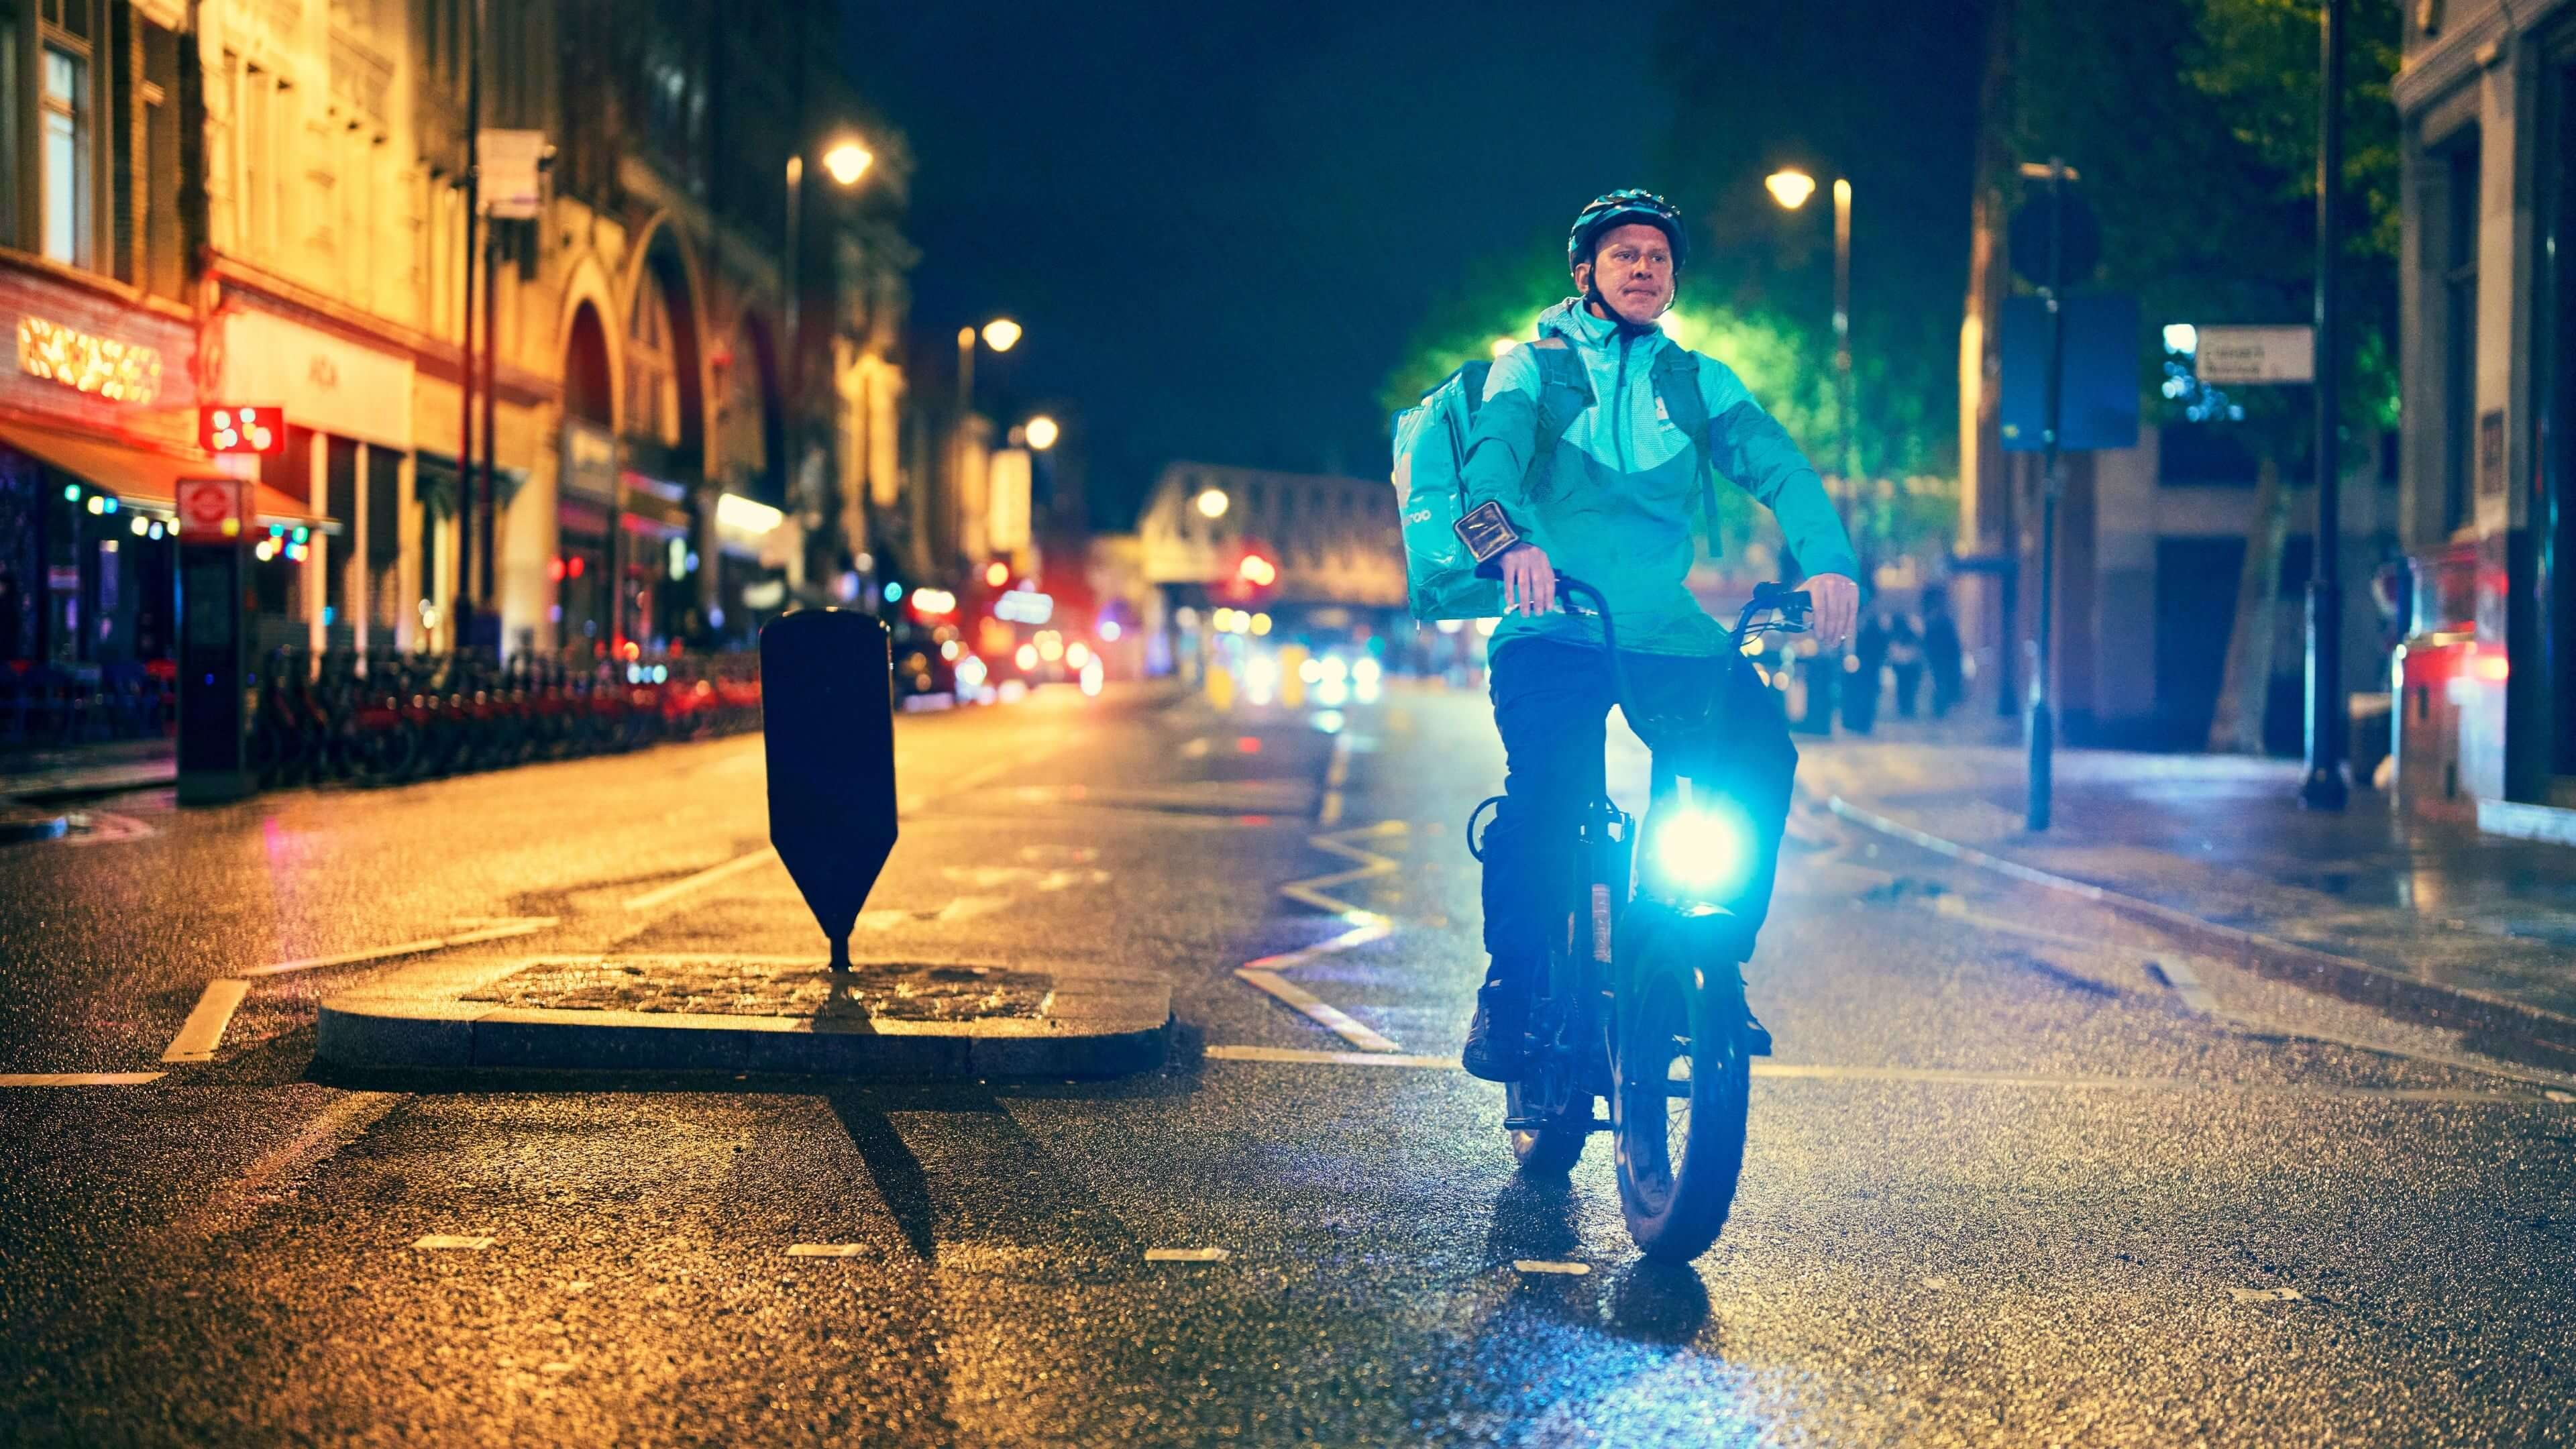 Deliveroo accident insurance